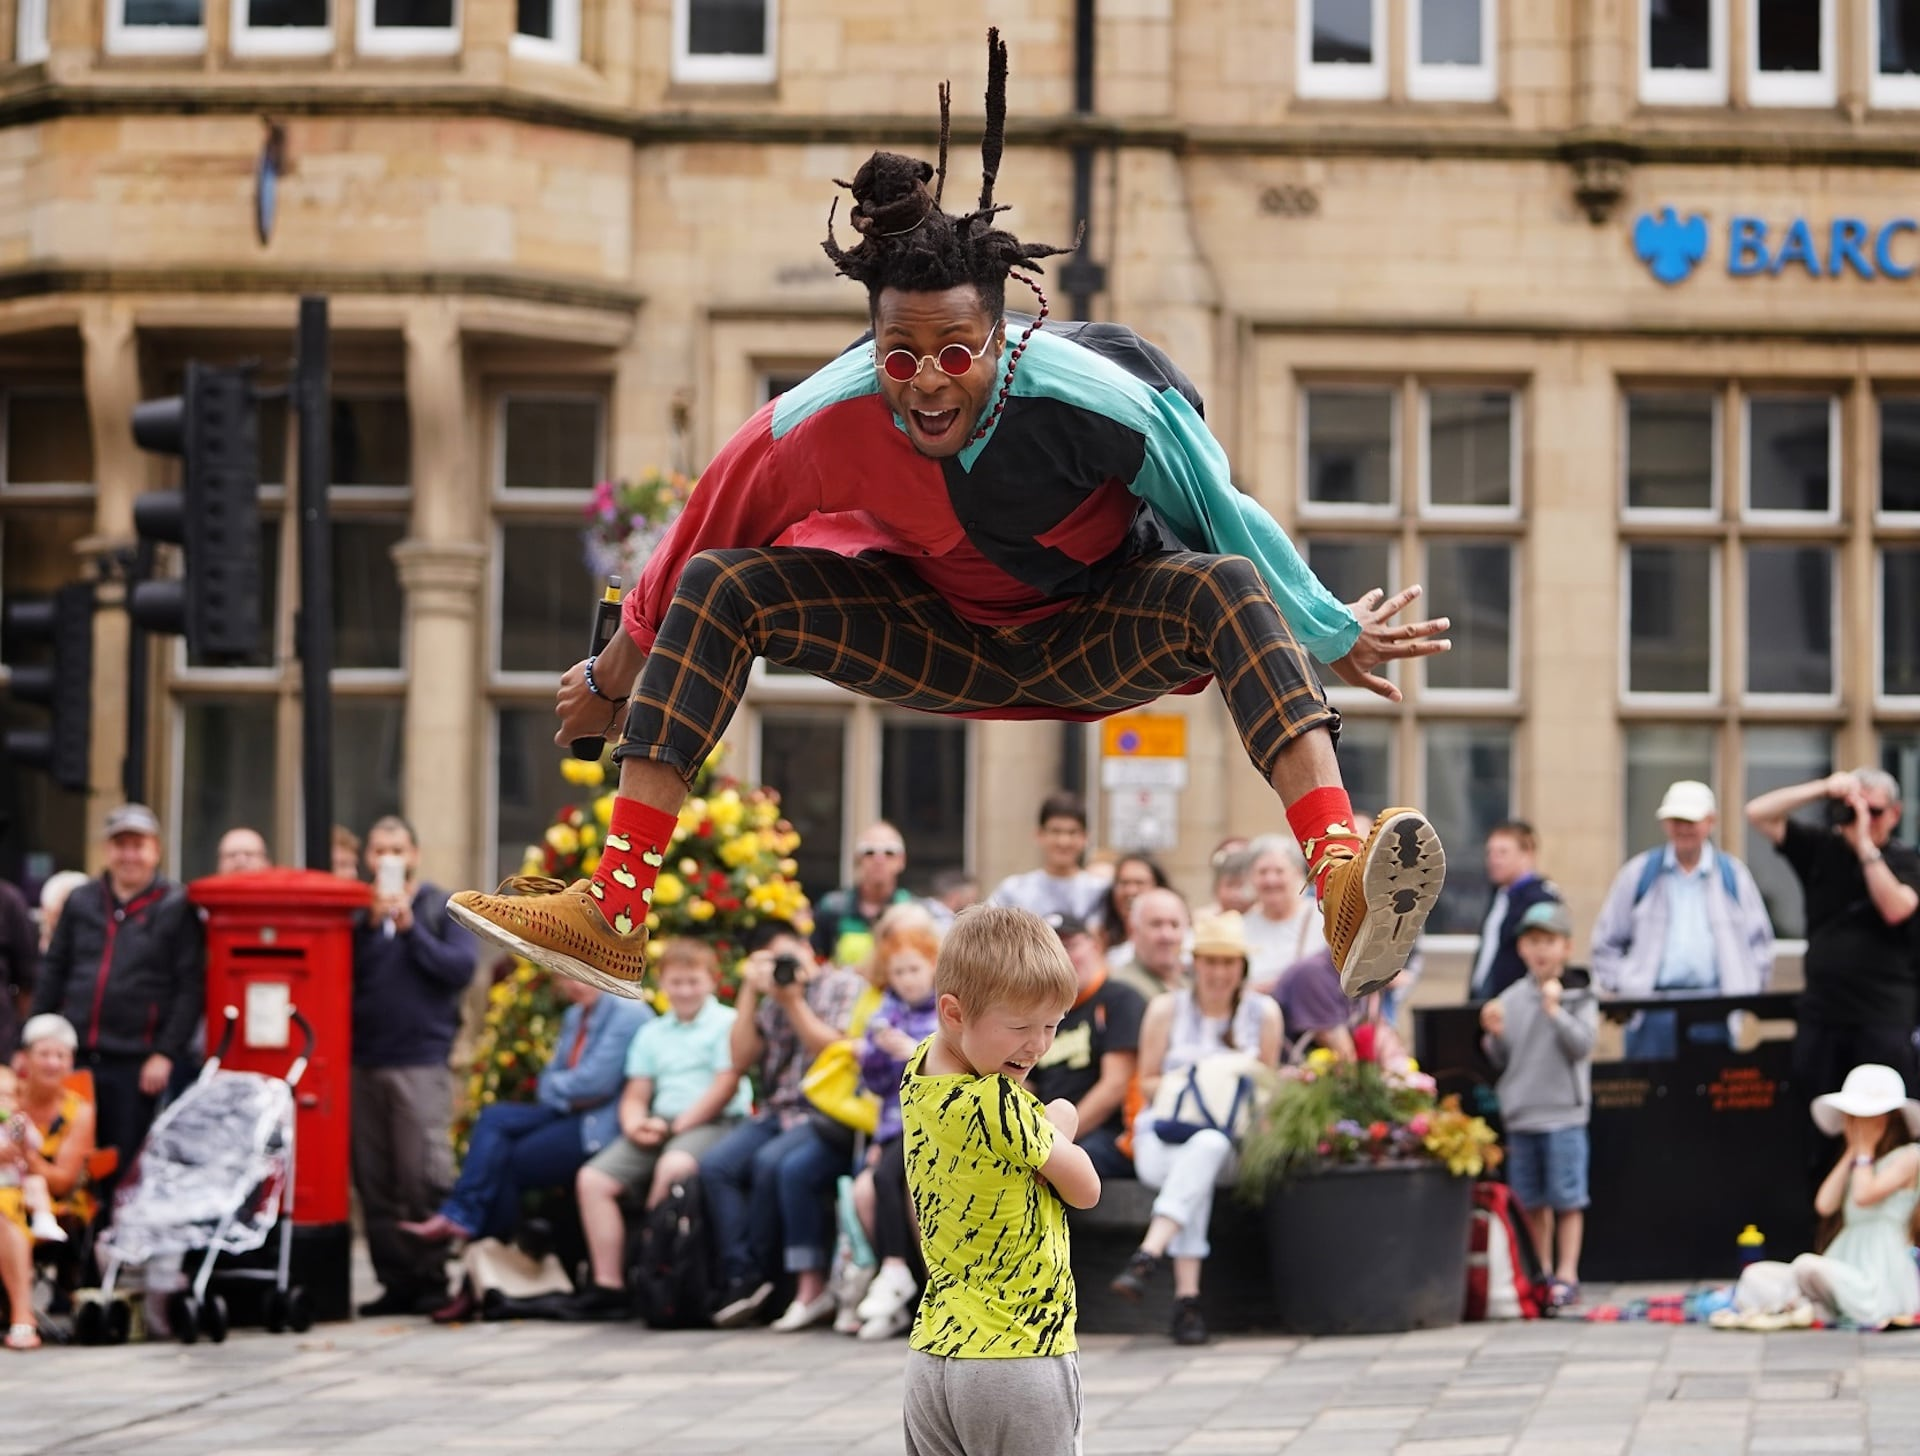 Man leaping over a child at Durham Brass Festival